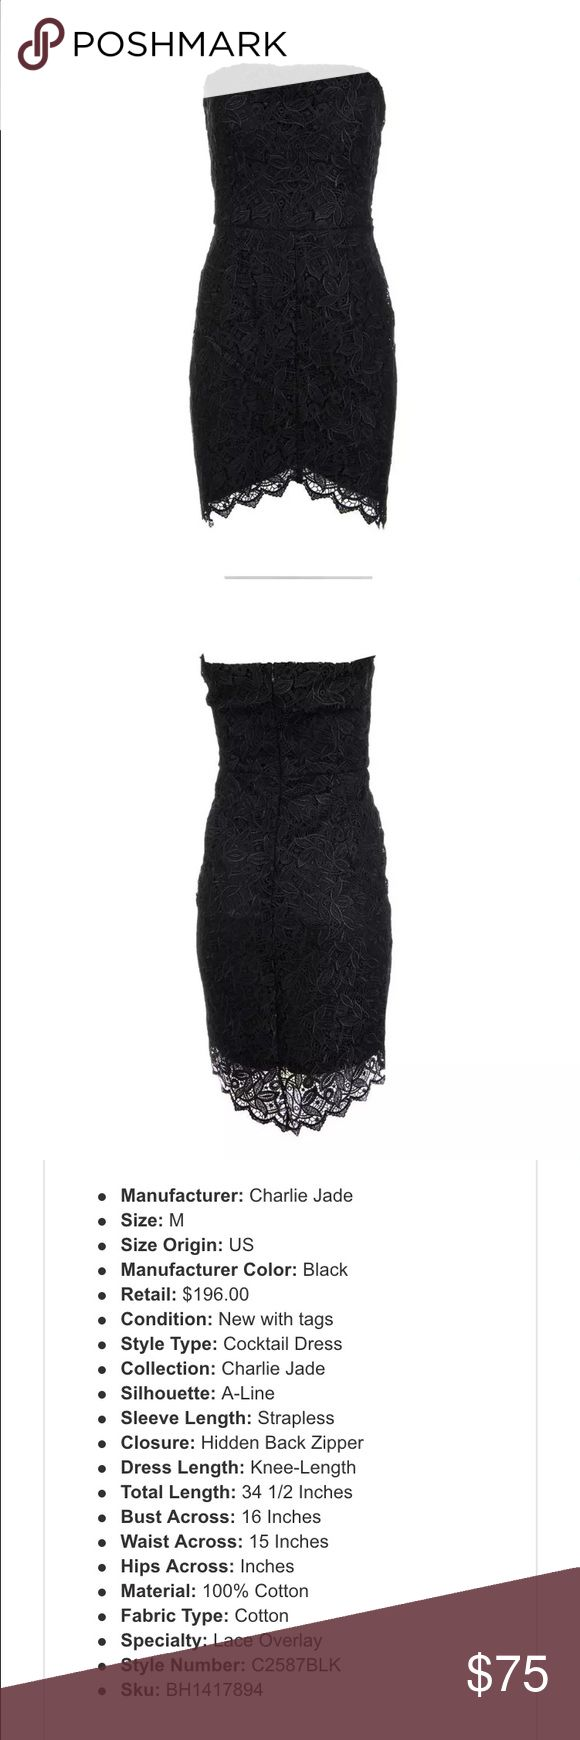 Charlie Jade Cocktail Dress Gorgeous, elegant dress with zip back and lace design that falls lower in back. charlie jade Dresses Mini